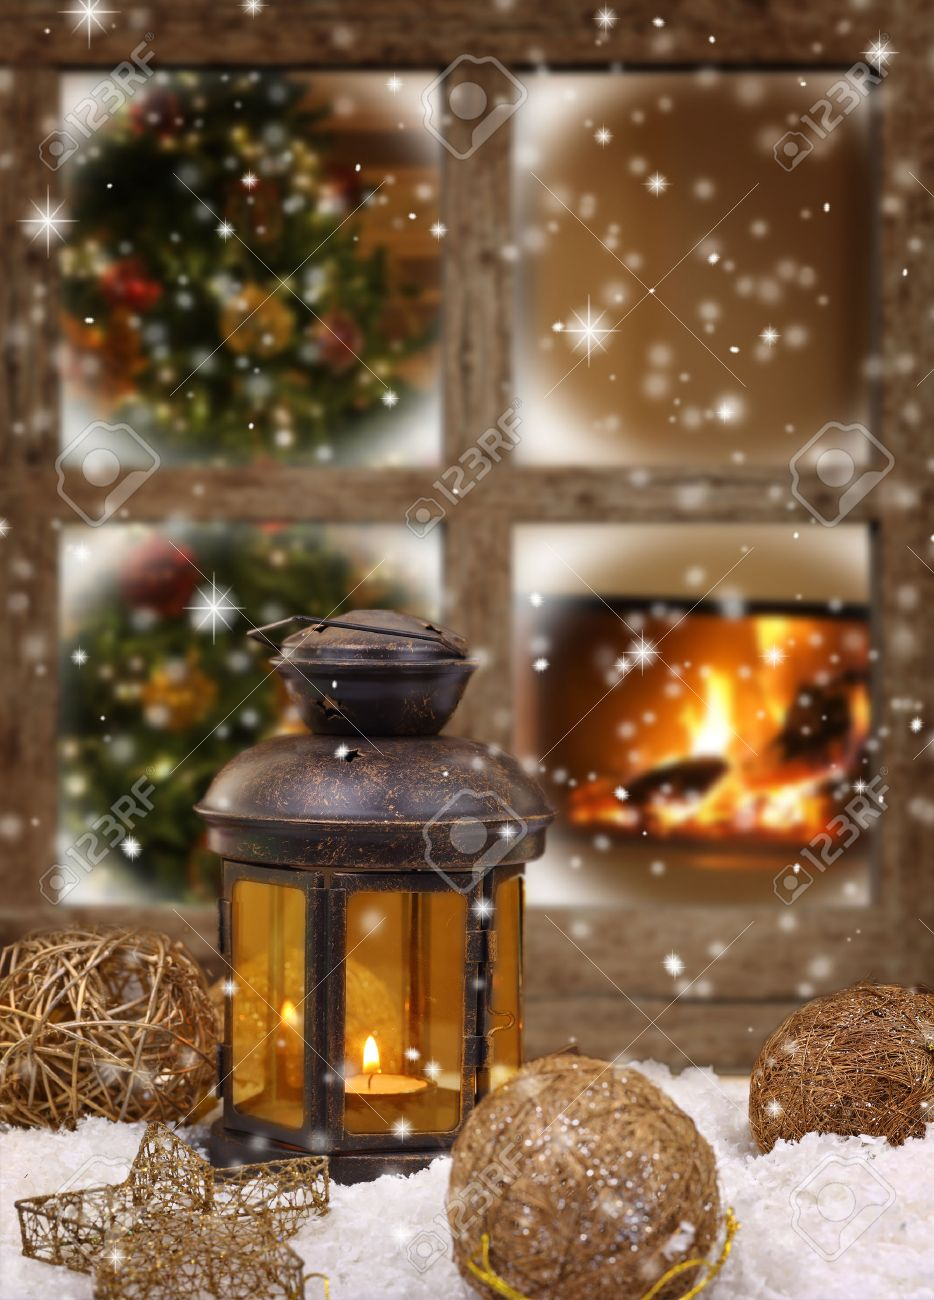 Christmas lantern and ornaments on snow in front of a window Stock Photo - 32637310